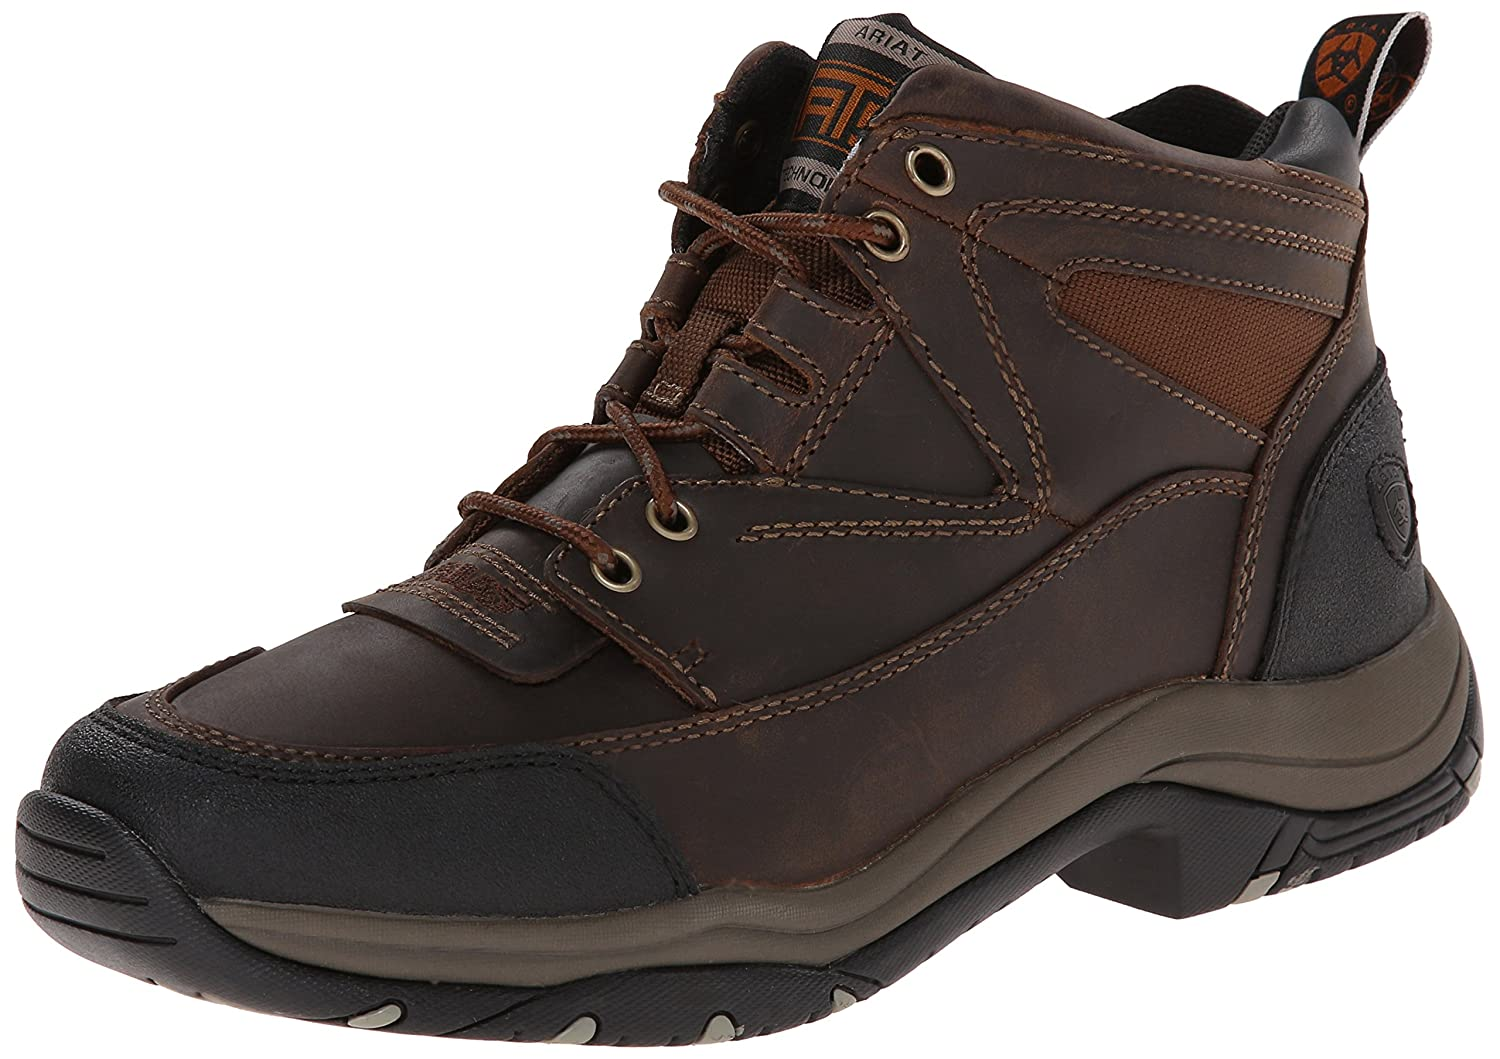 Ariat Women's - Terrain Hiking Boot B004DDPQ18 8.5 D(M) US|Distressed Brown